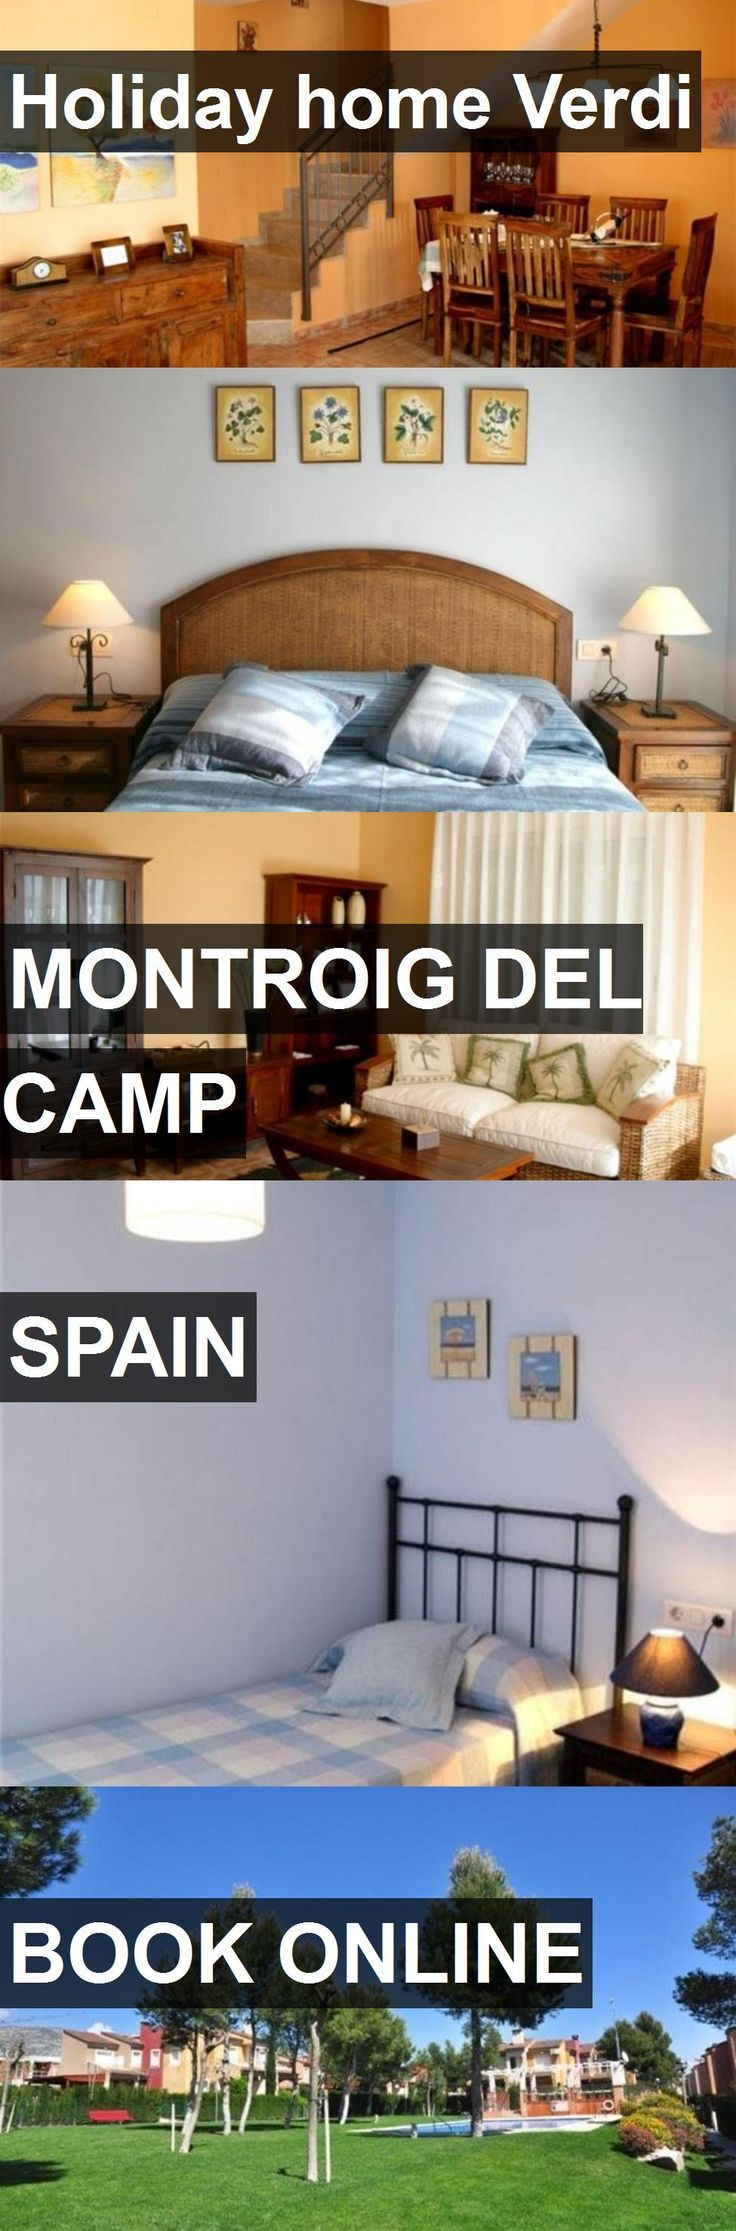 Hotel Holiday home Verdi in Montroig del Camp, Spain. For more information, photos, reviews and best prices please follow the link. #Spain #MontroigdelCamp #travel #vacation #hotel